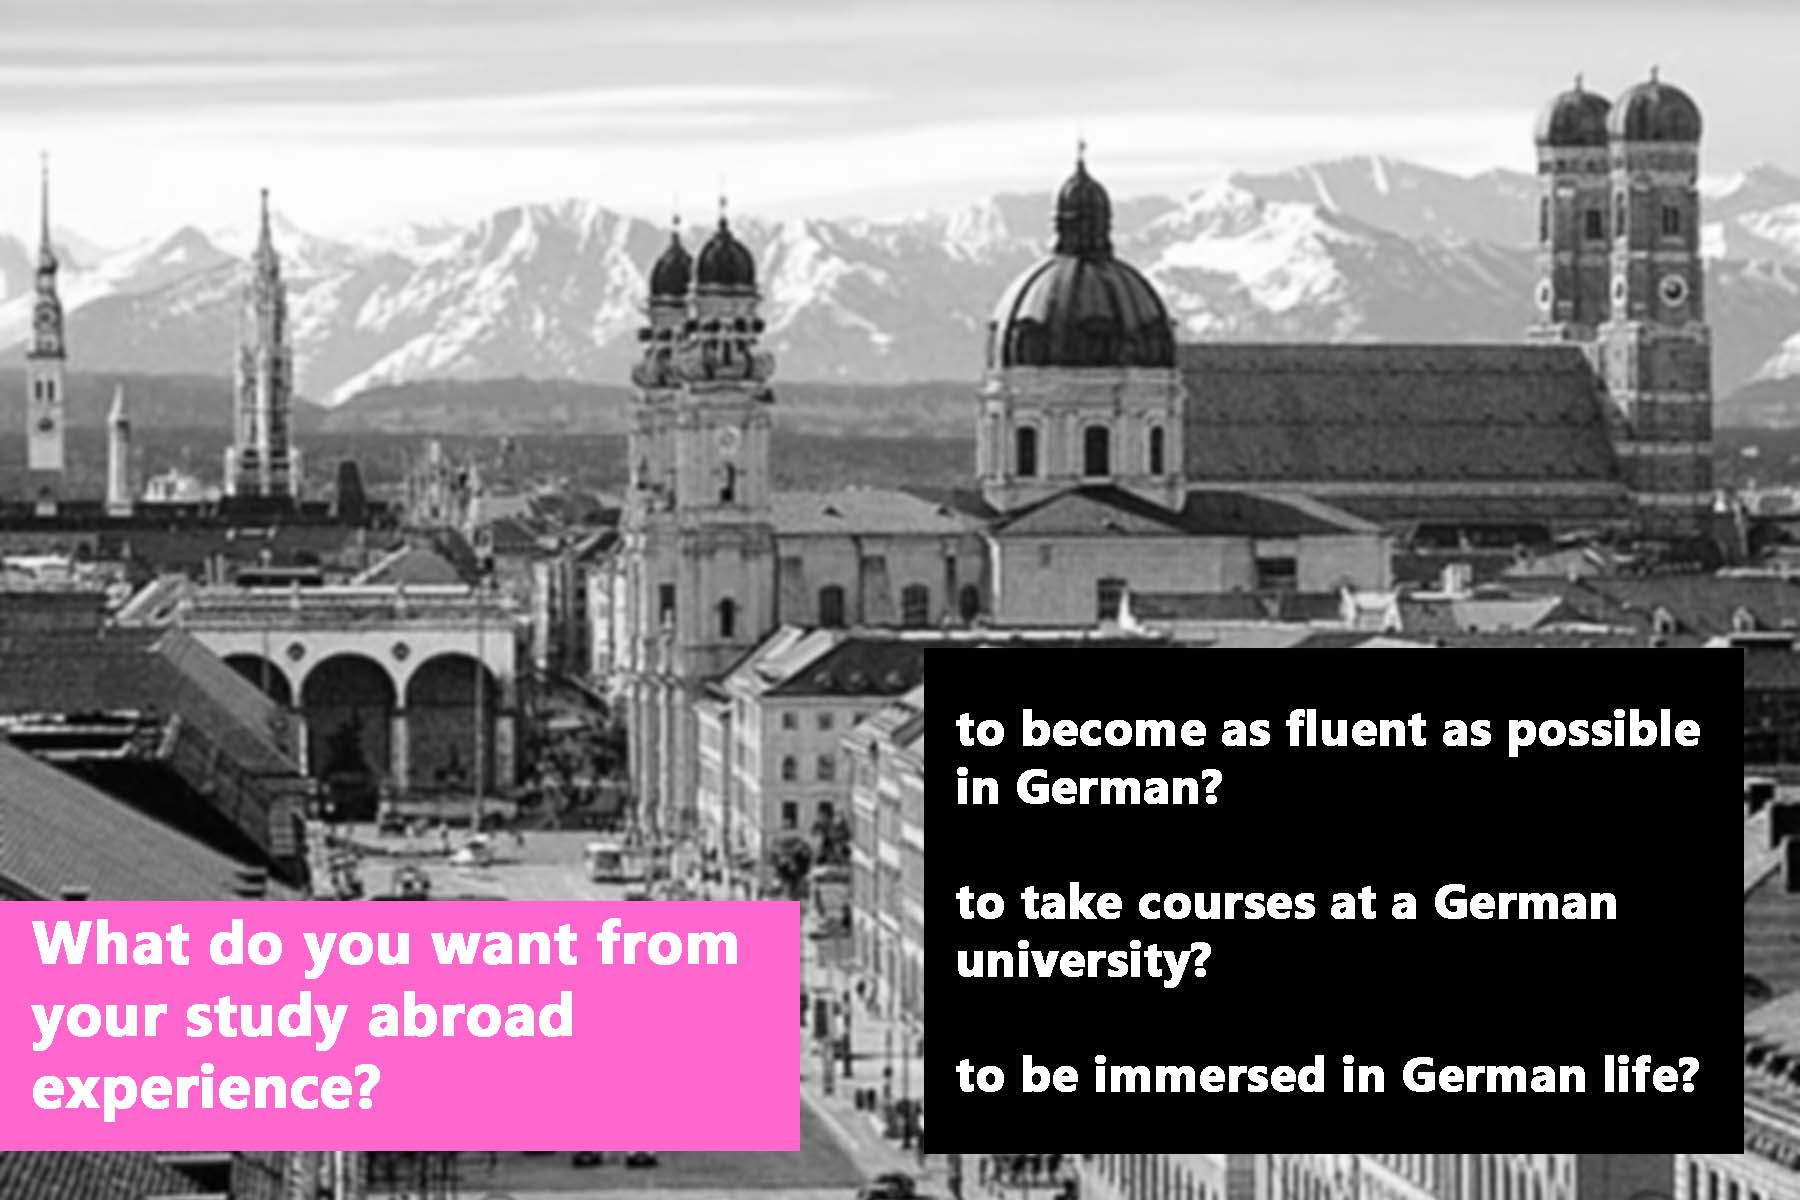 What do you want from your study abroad experience?